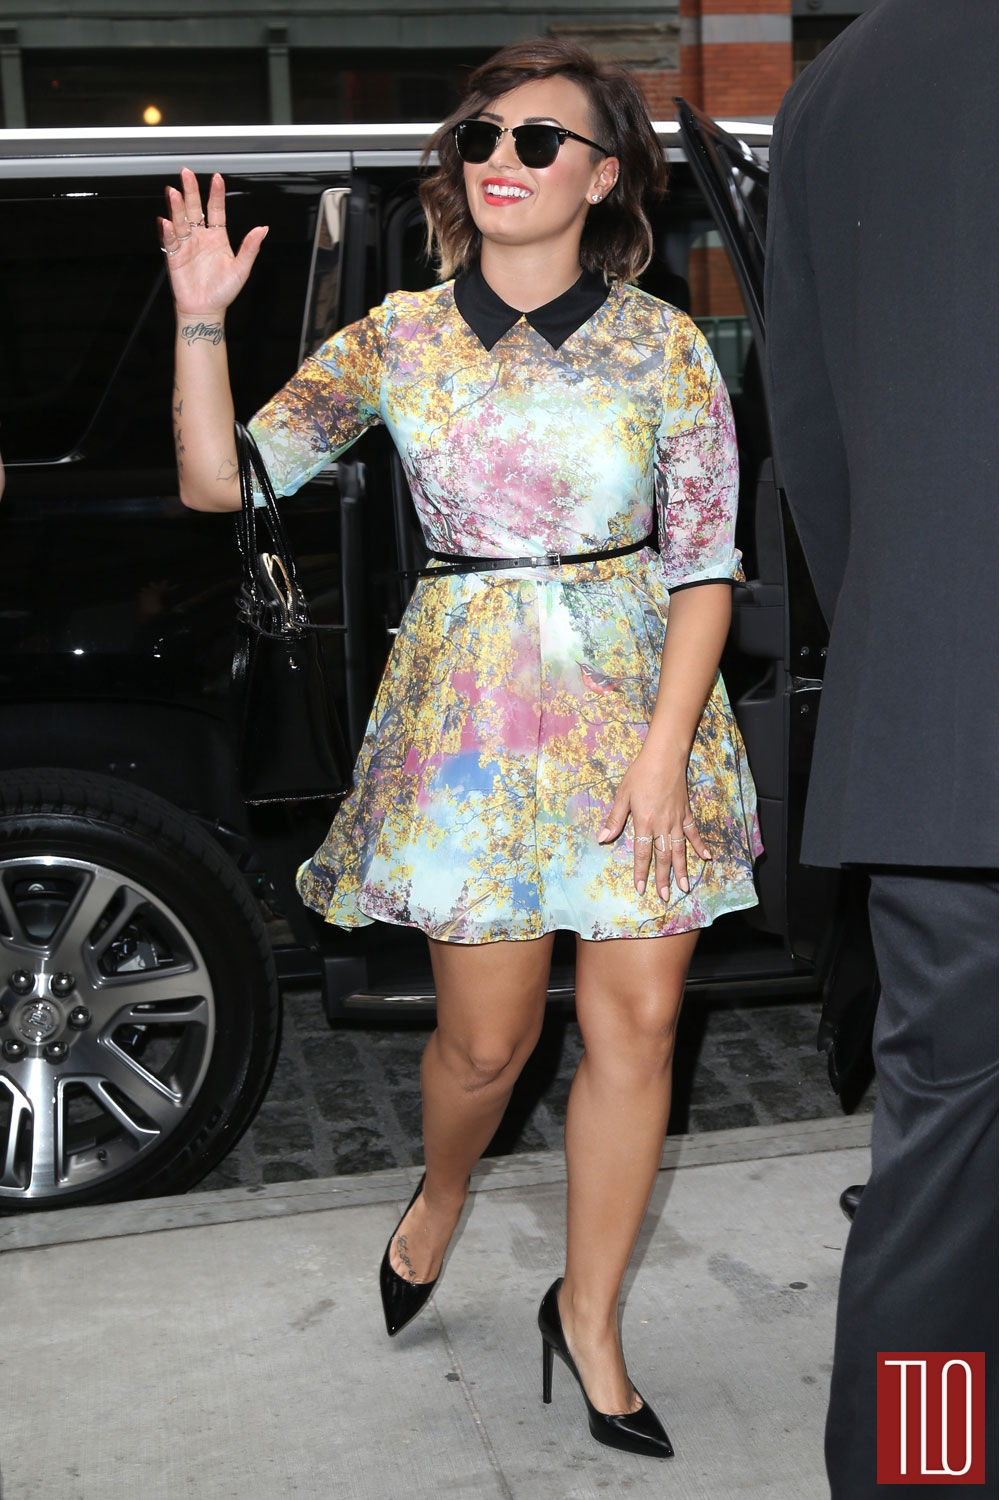 Demi-Lovato-Ted-Baker-London-Good-Morning-America-TV-Style-GOTS-NYC-Tom-Lorenzo-Site-TLO (1)